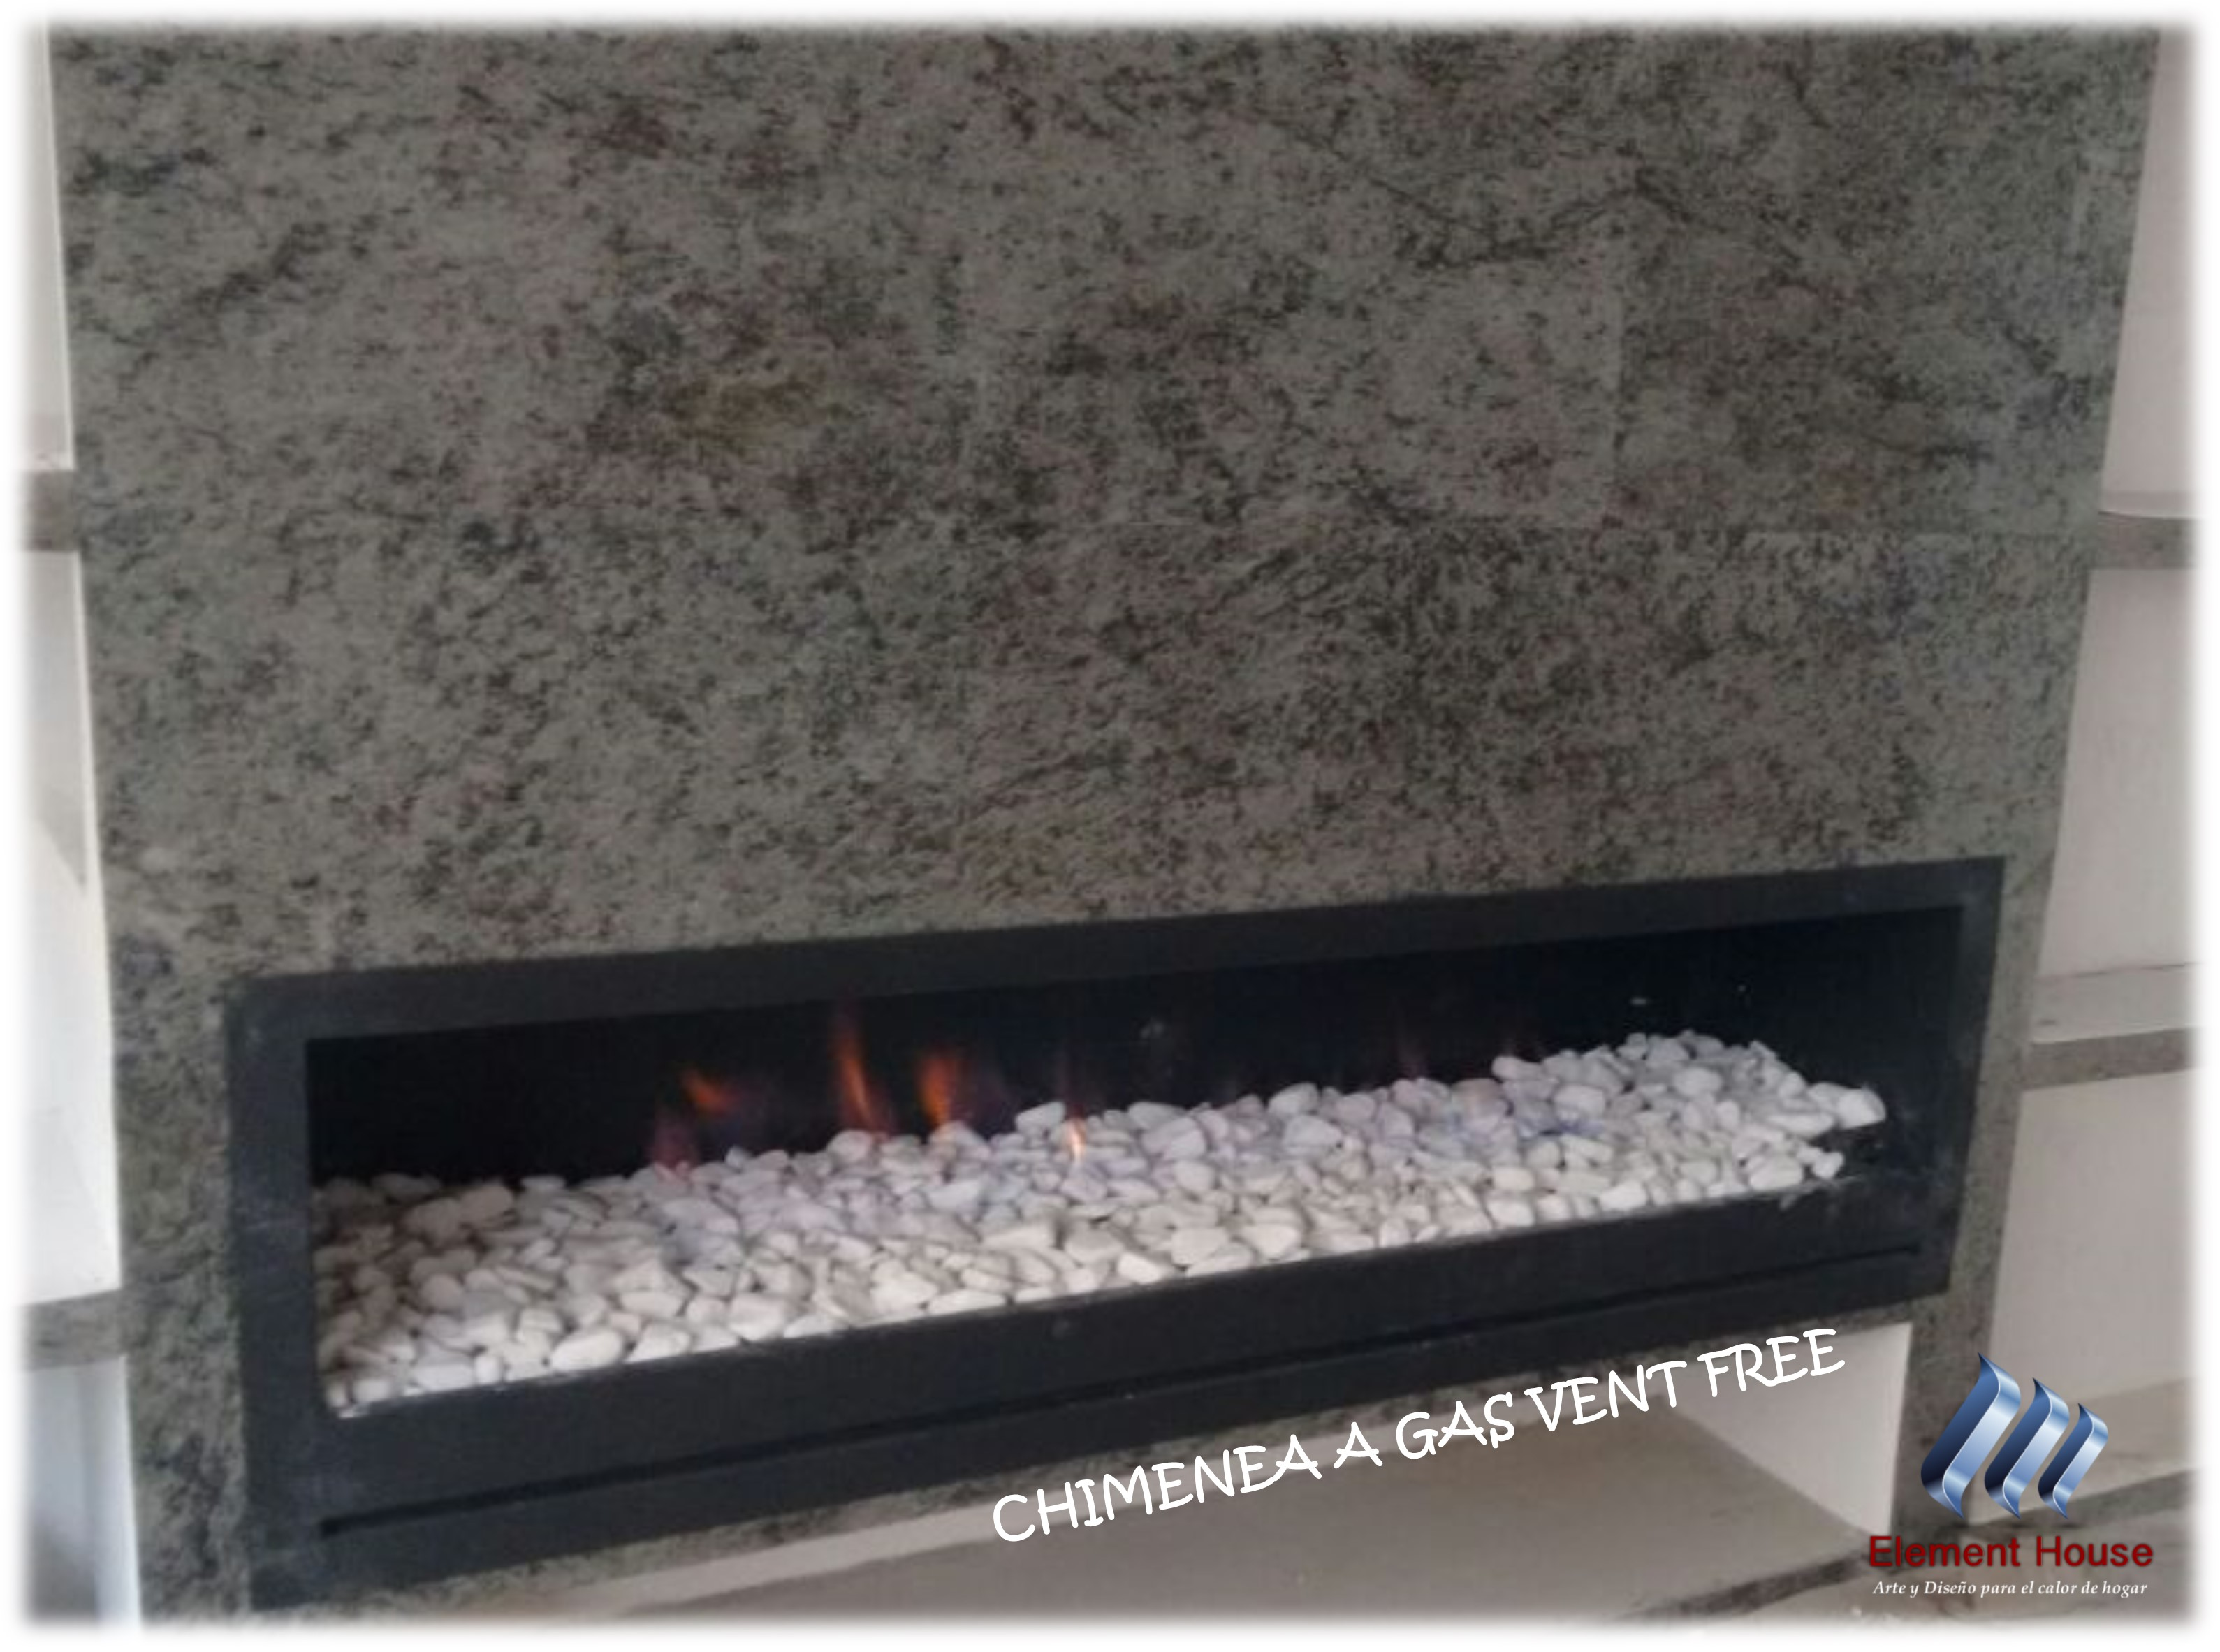 CHIMENEAS A GAS ELEMENT HOUSE (35)